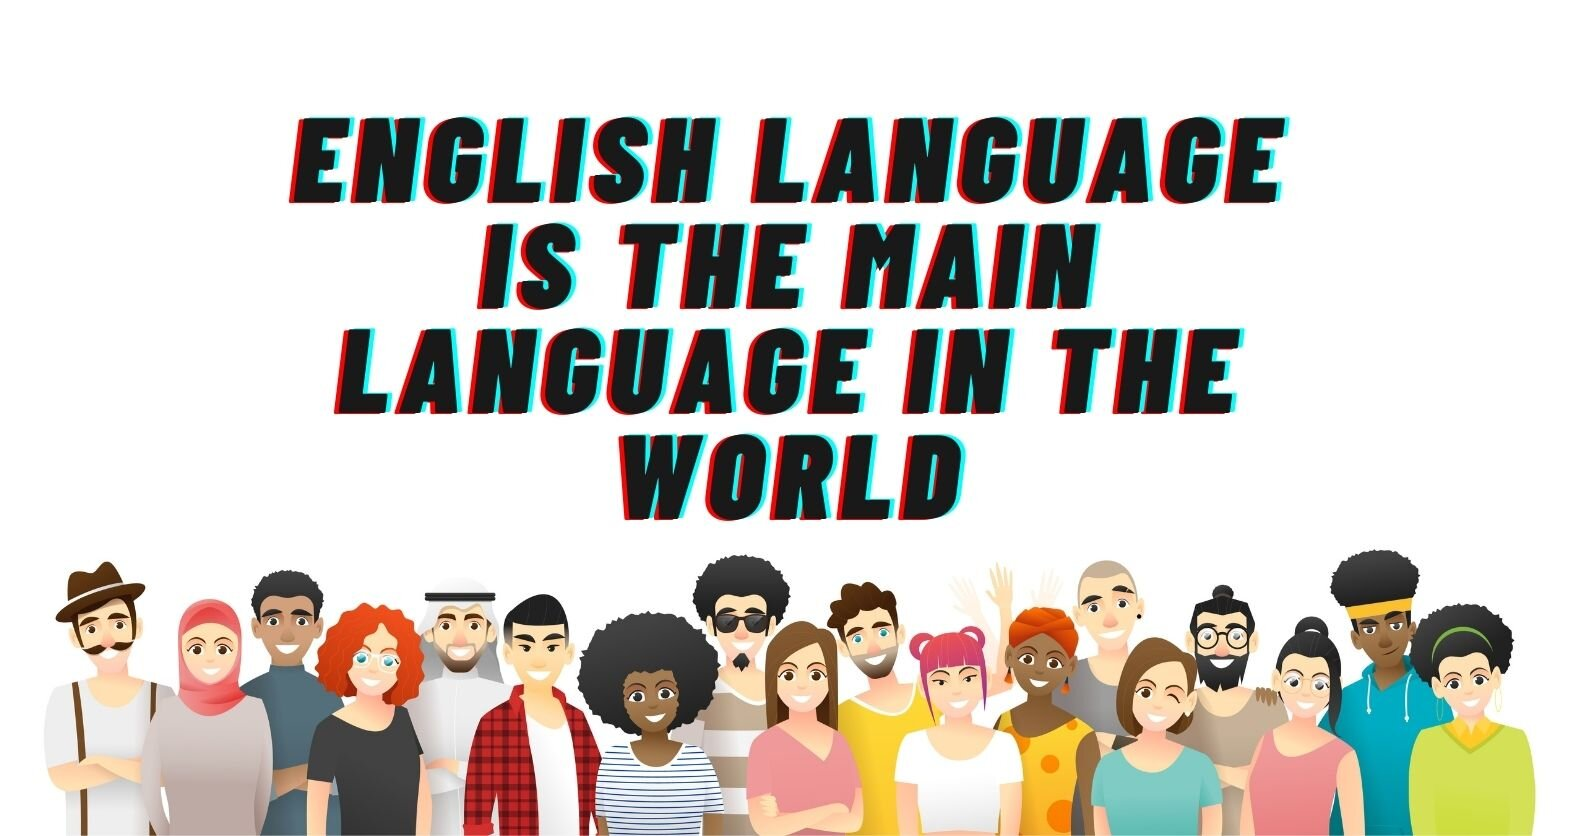 The English Language Is The Main Language In The World